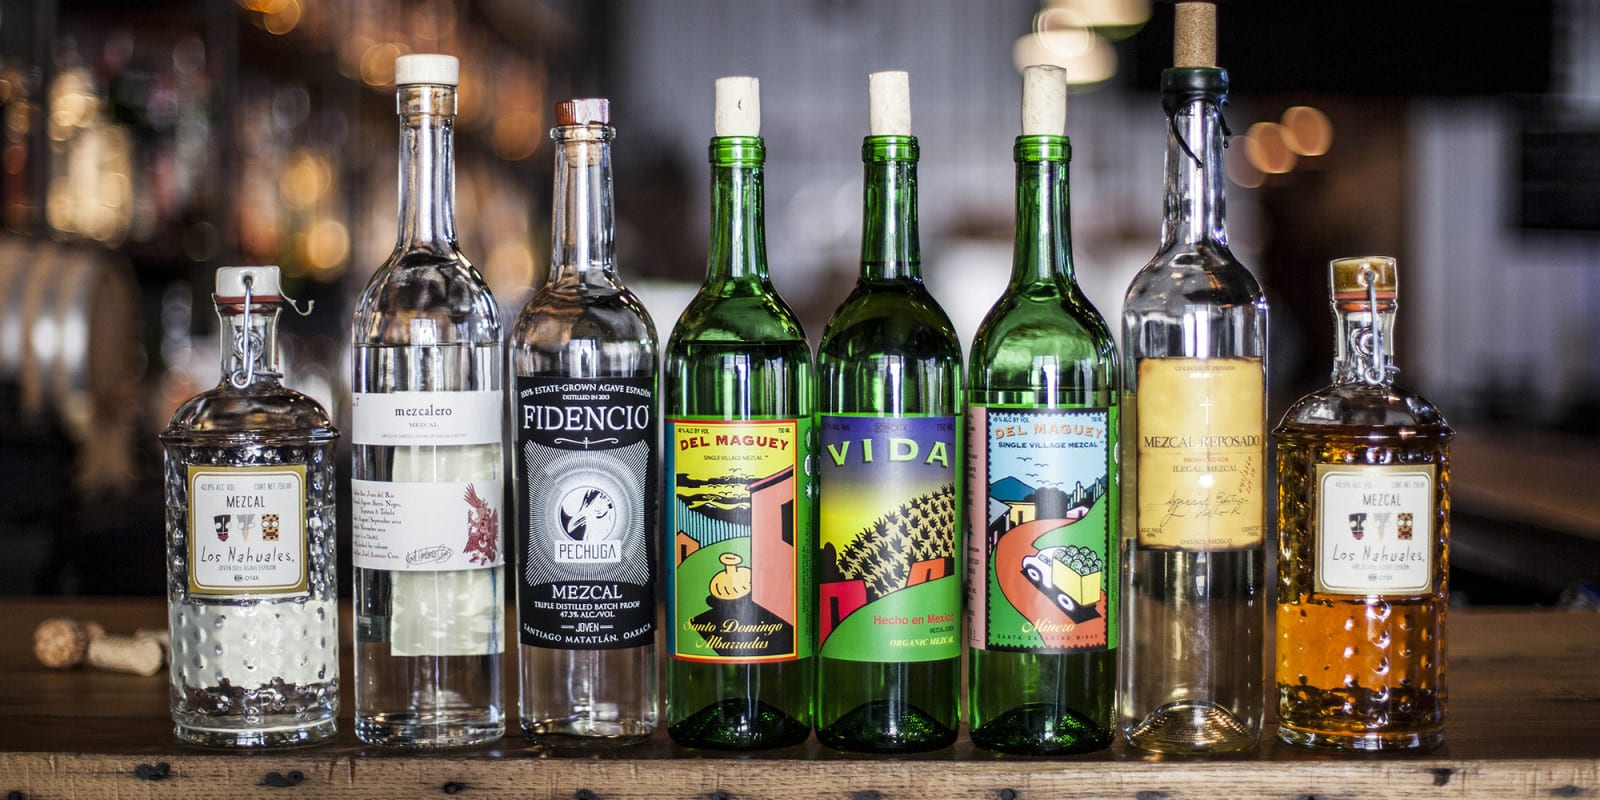 5 O'Clock Somewhere Friday: Mezcal Isn't Messing Around